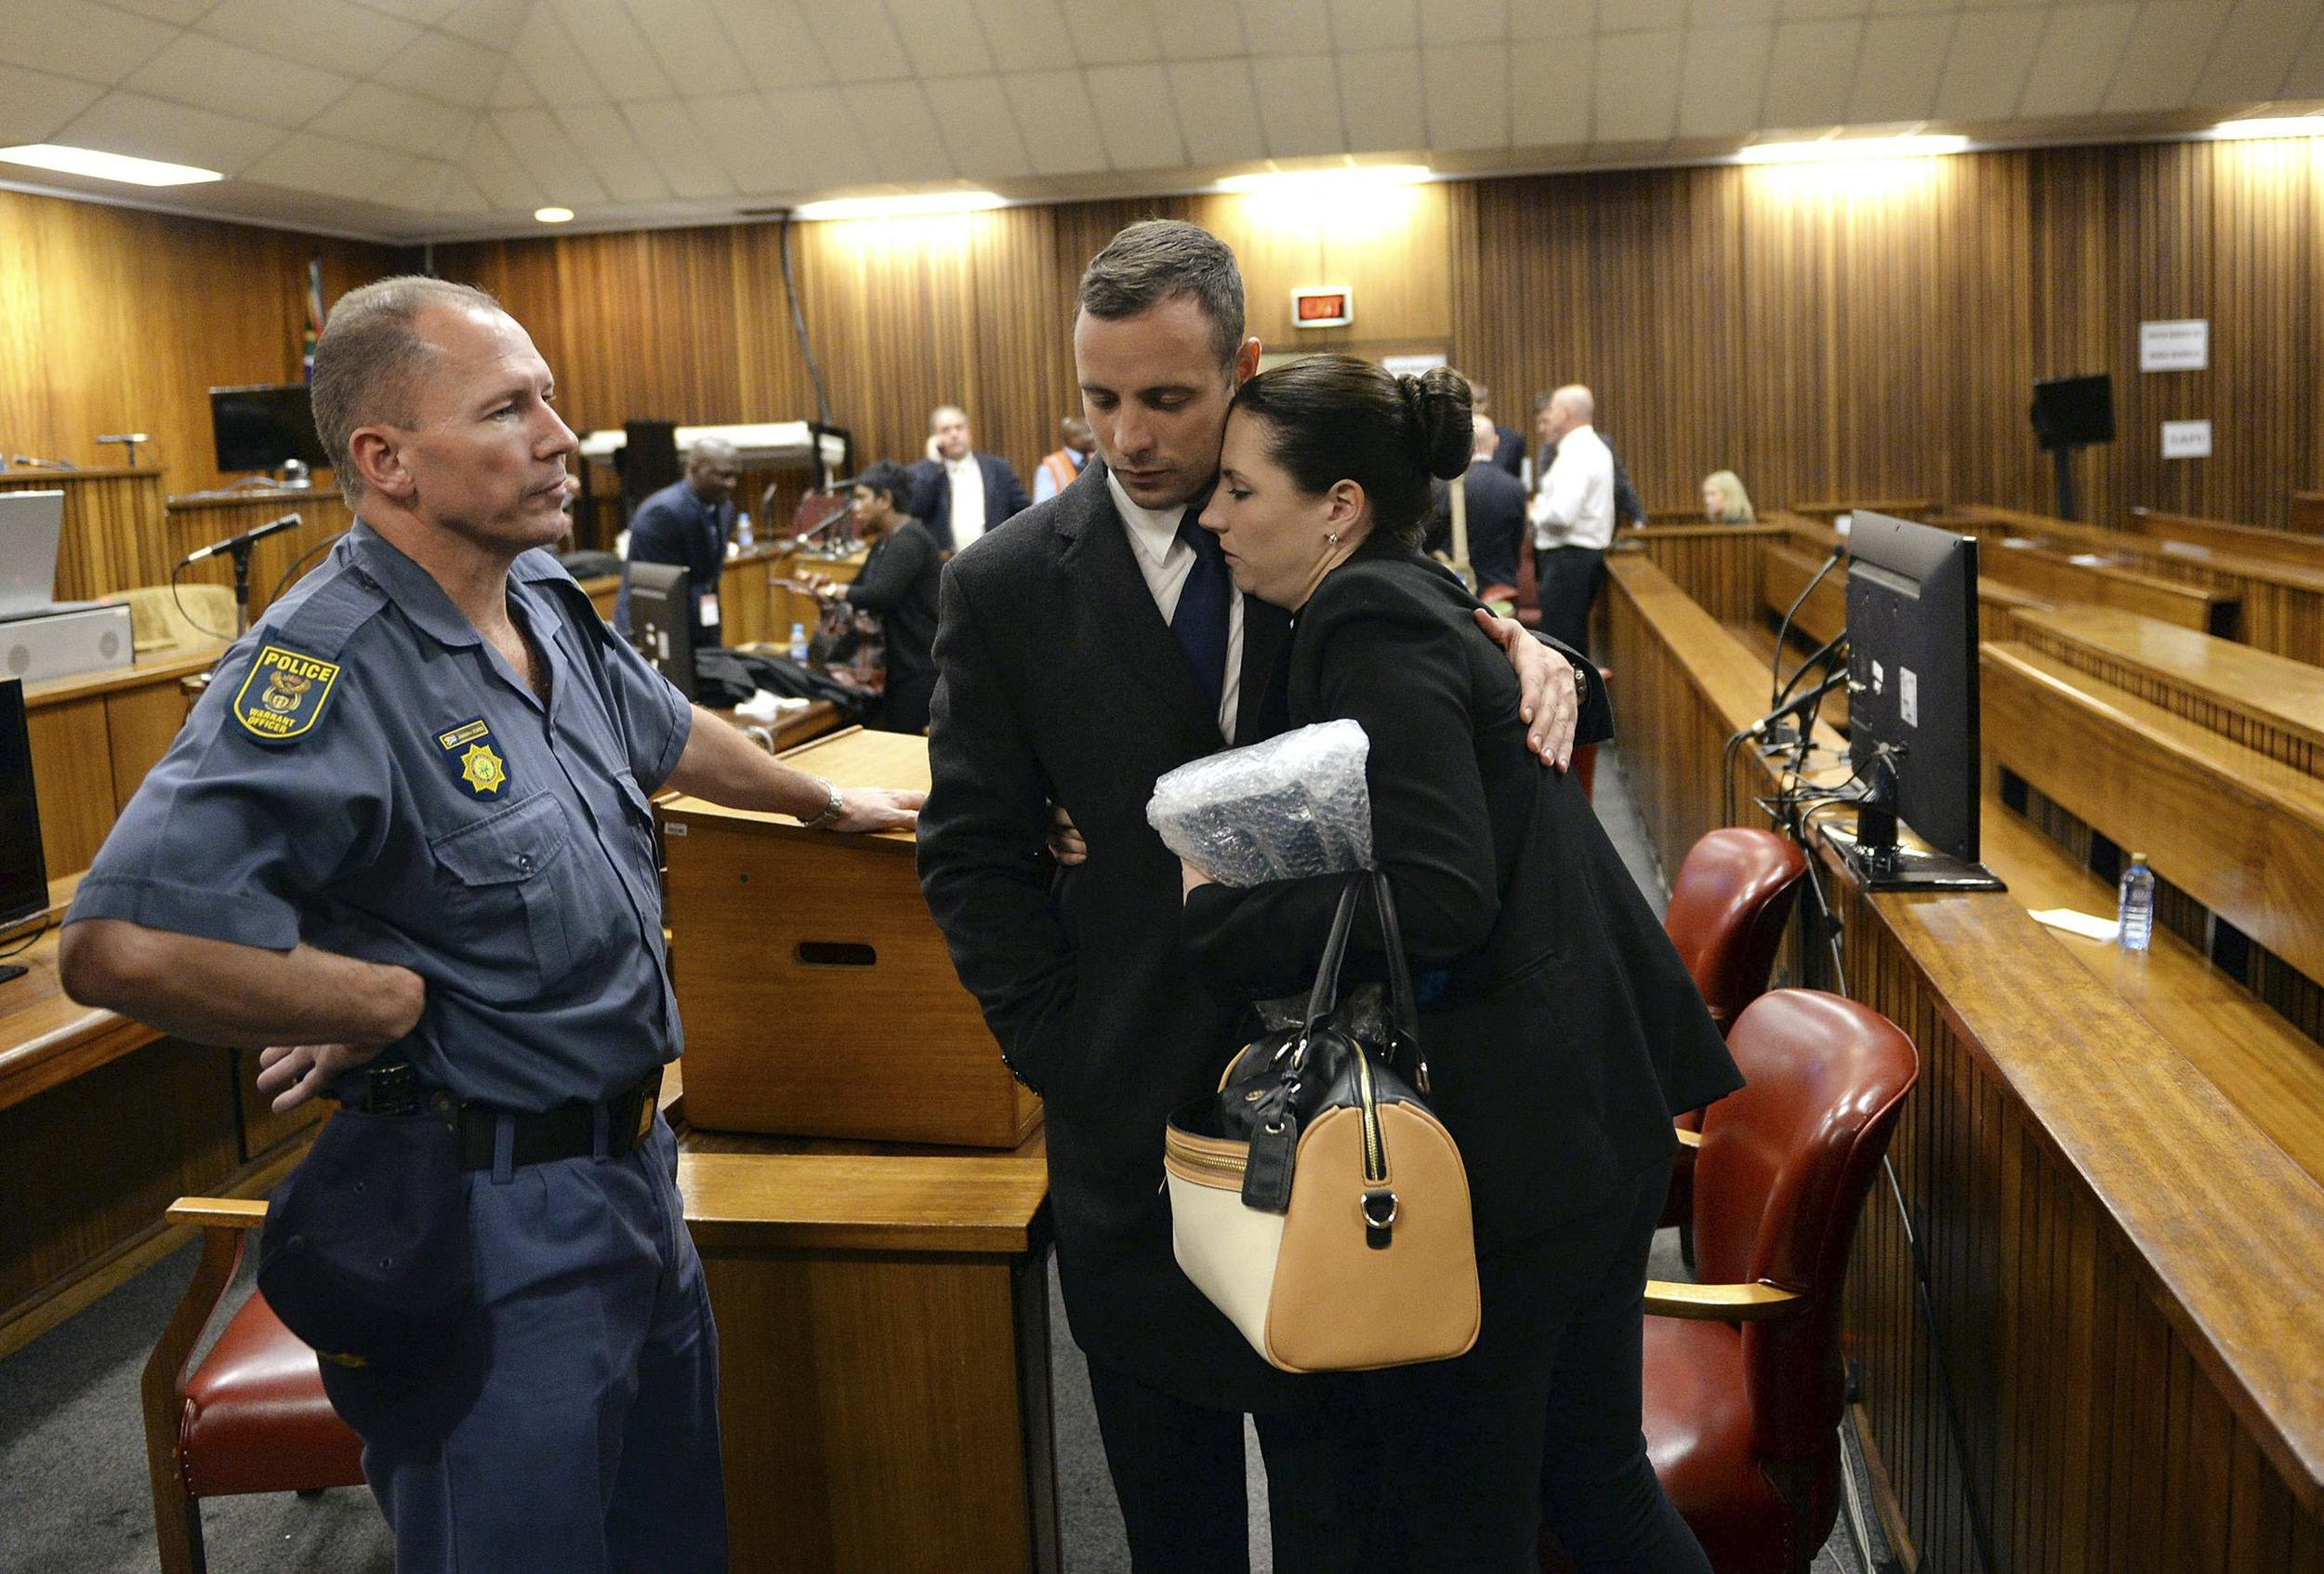 Image: Oscar Pistorius and sister Aimee